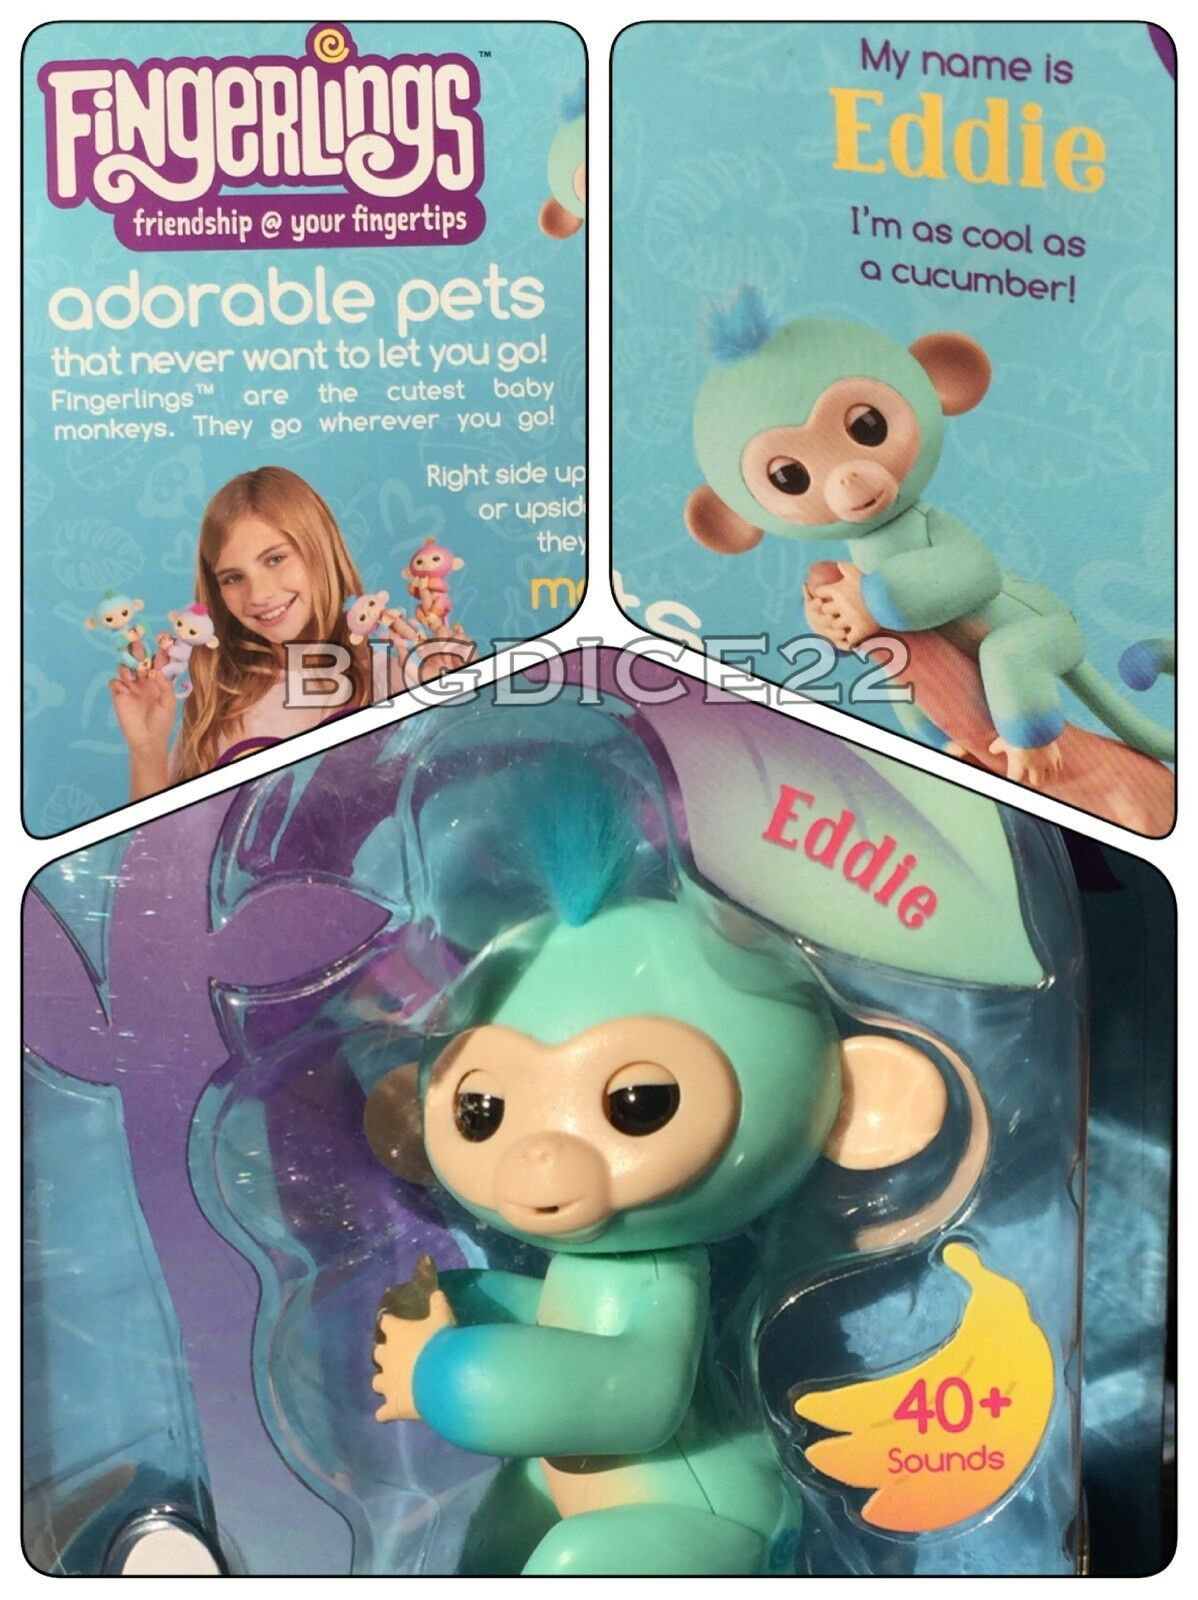 Other Interactive Toys Inventive Authentic Fingerlings Interactive Baby Sloth By Wowwee Kingsley Fingerling